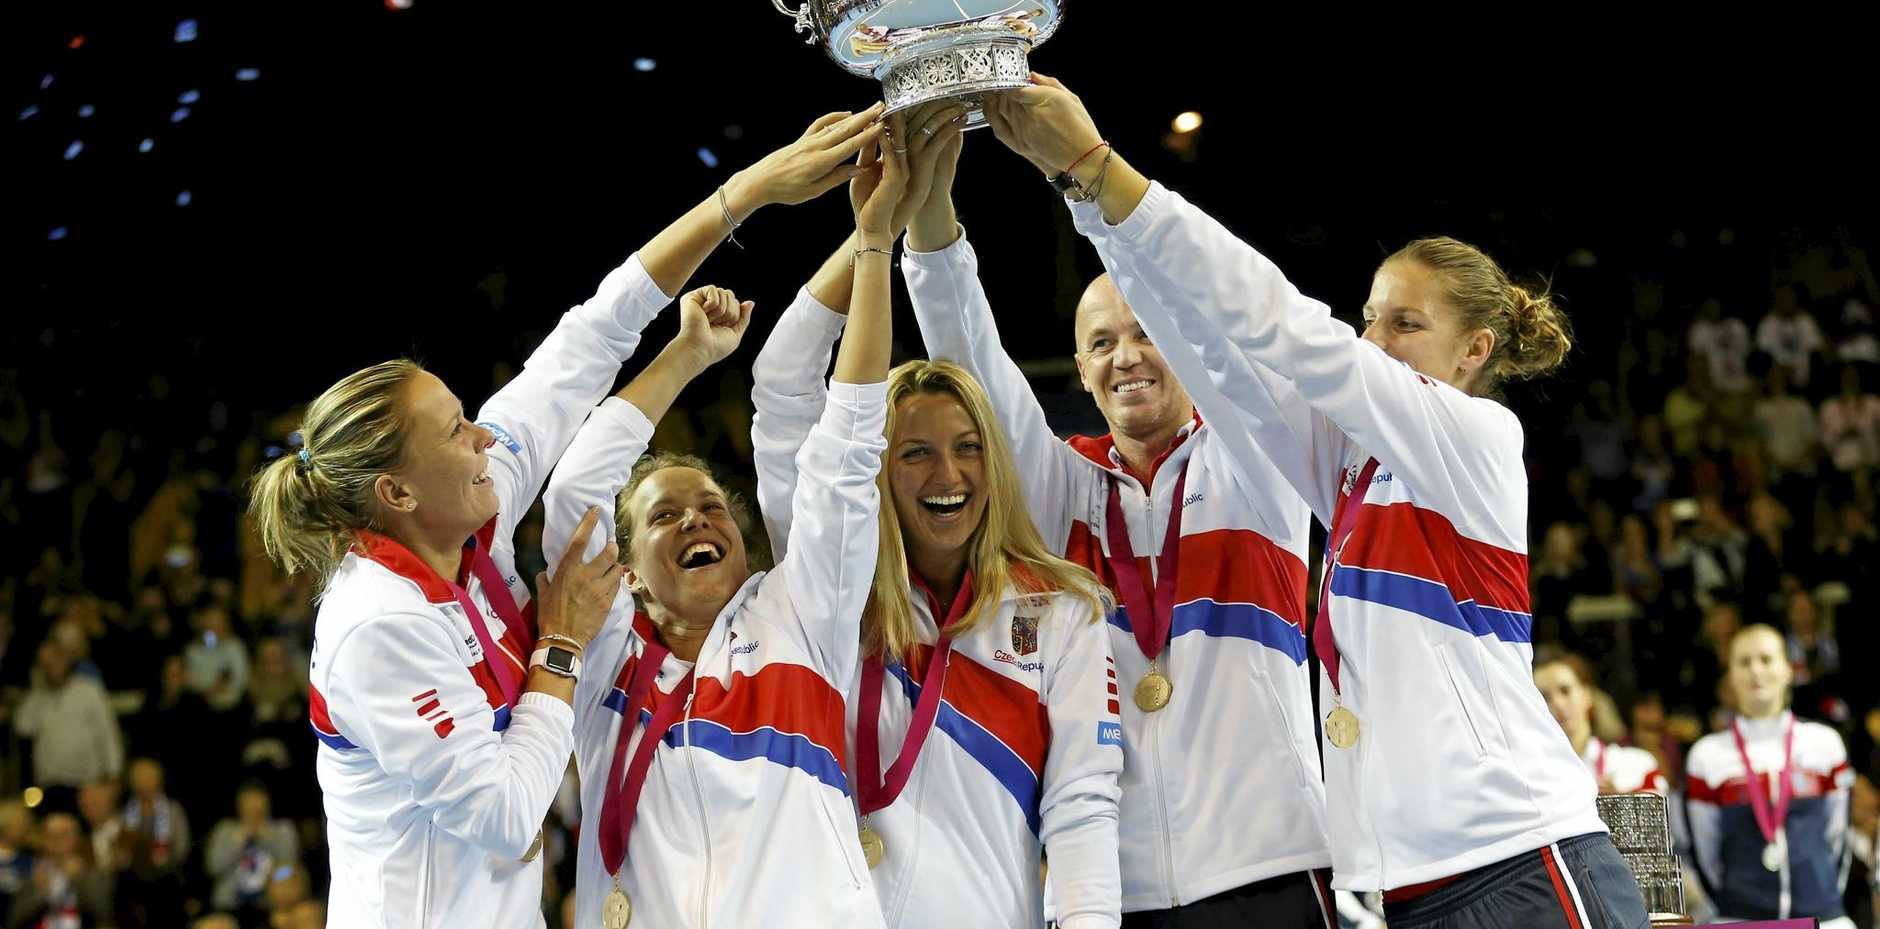 Czech Republic players lift the cup after their victory against France in Strasbourg.